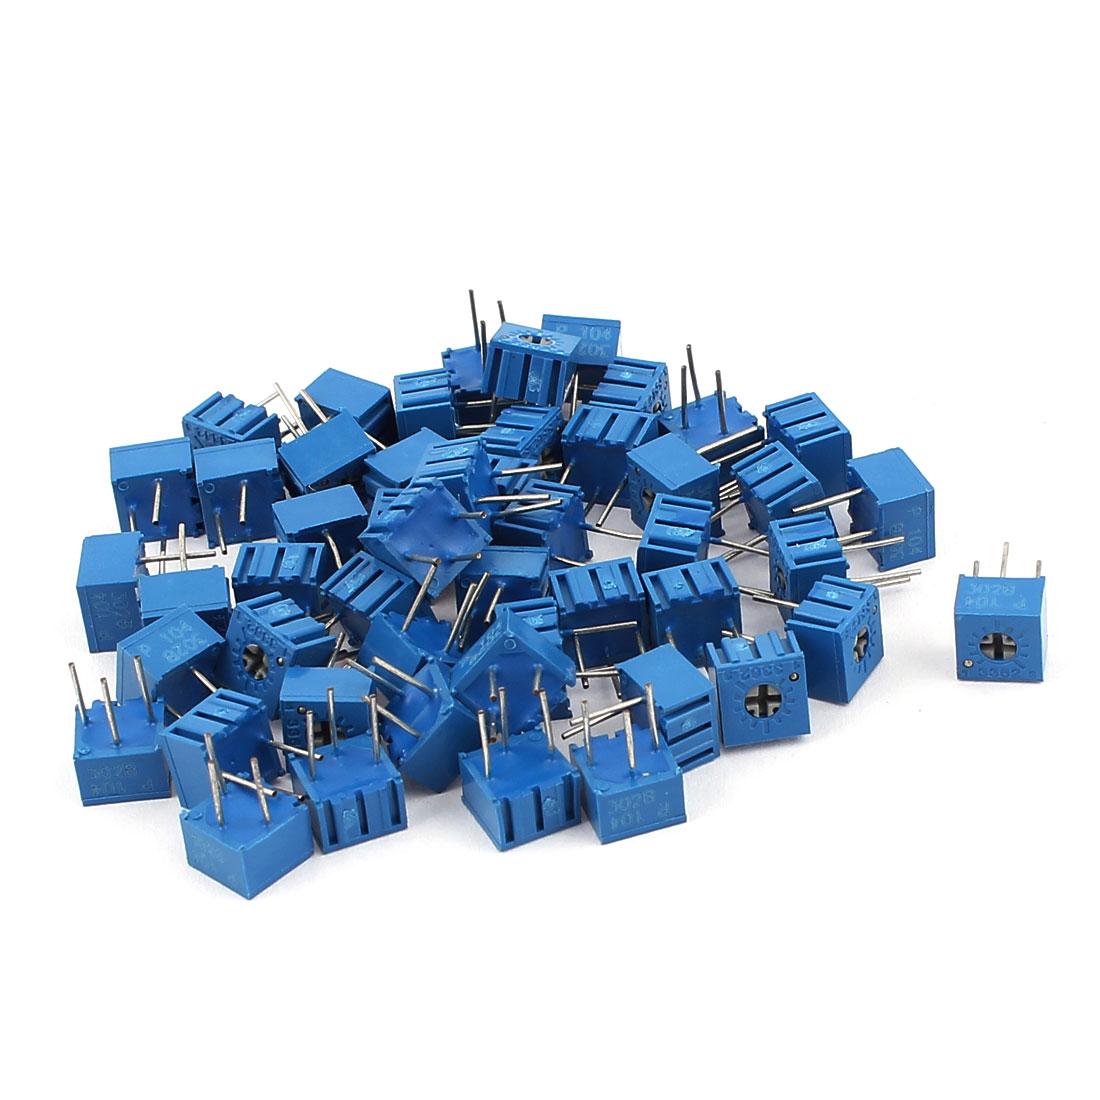 50Pcs Adjustable Potentiometer Trimmer Variable Resistor 3362P-201 200 Ohm